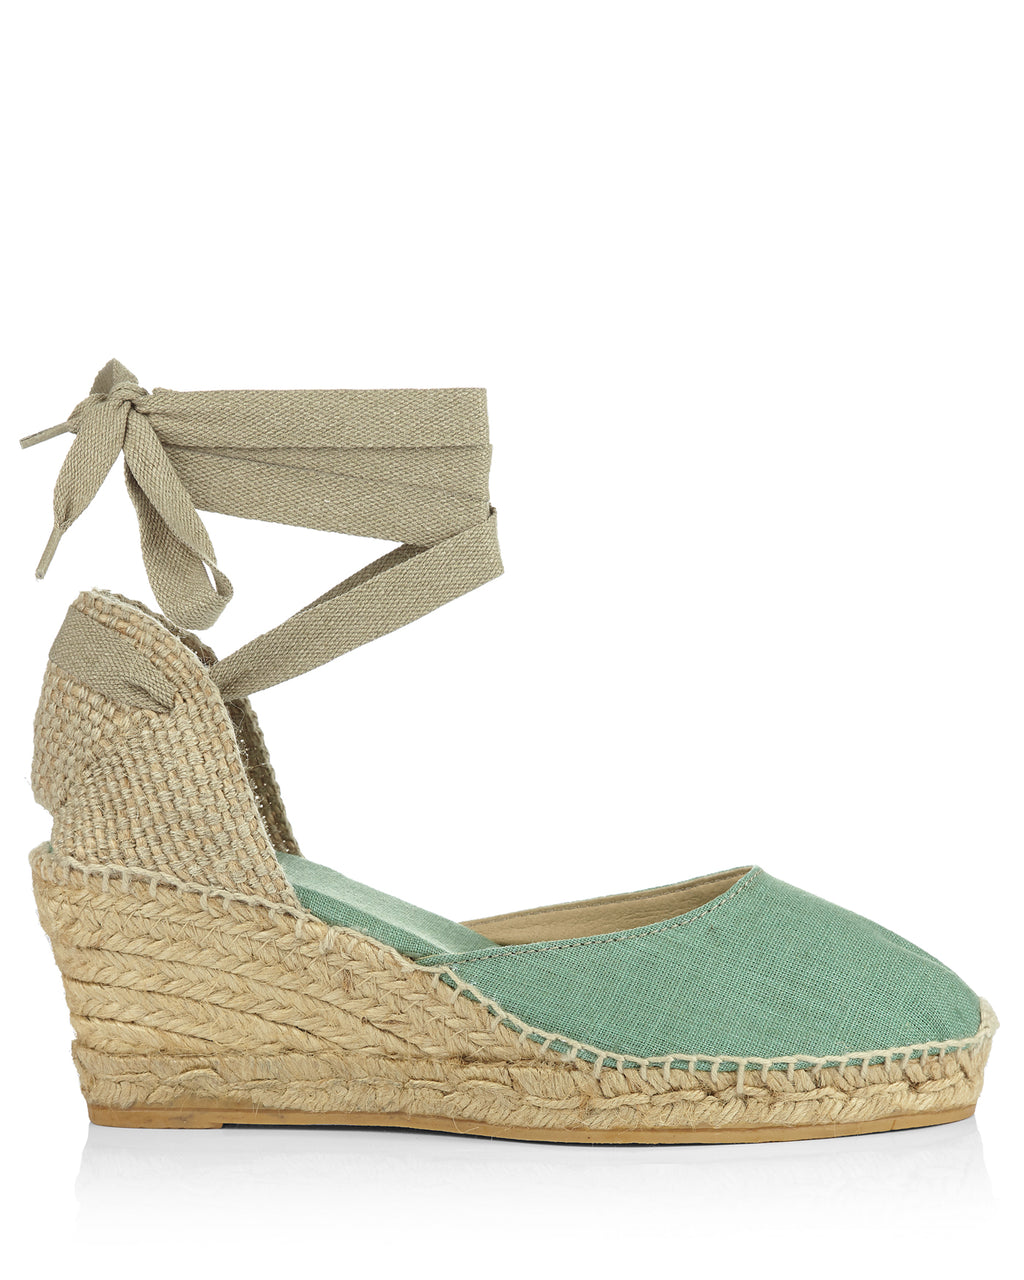 Calonge Mint Fabric Tie Up Espadrilles